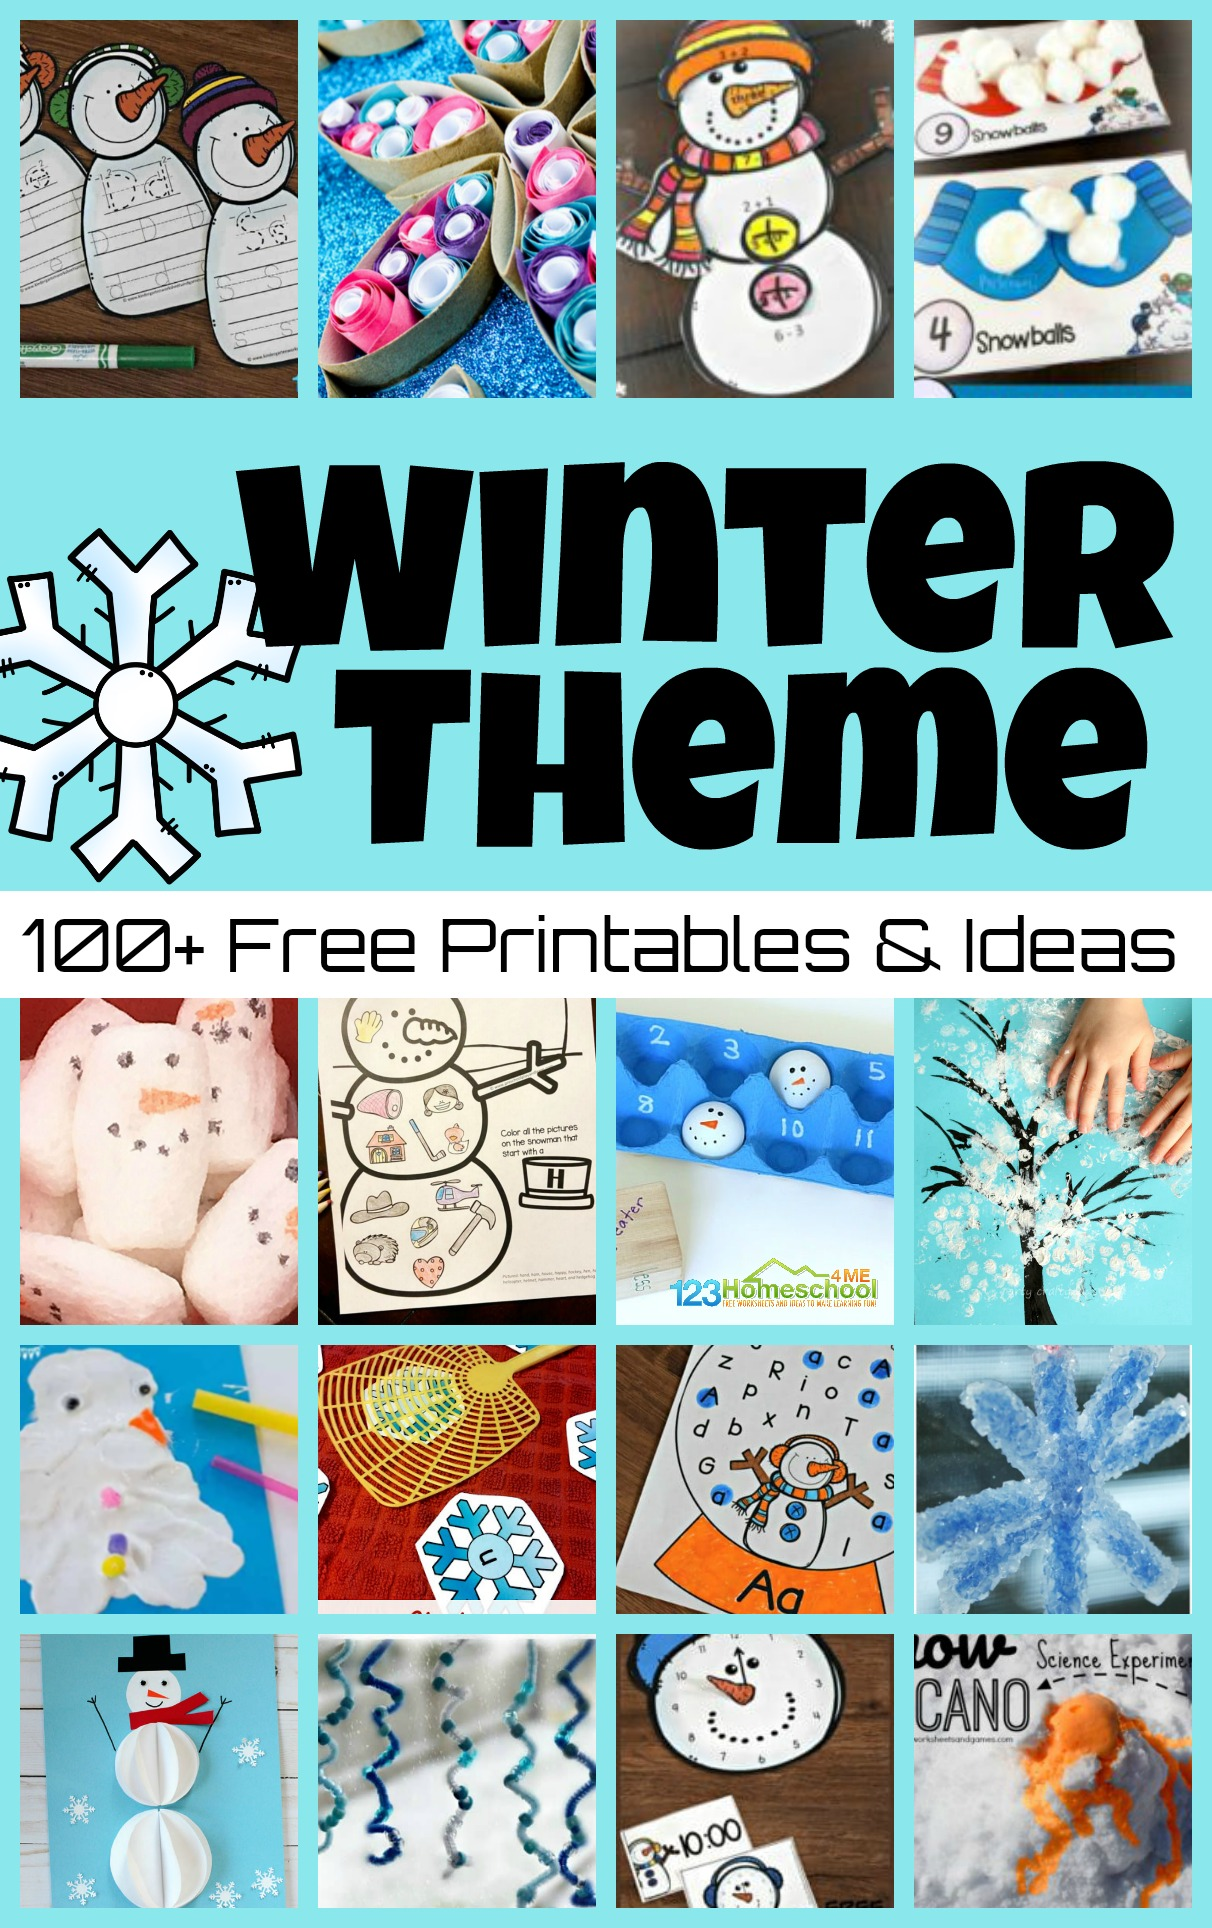 Your children will have fun learning all winter long with these fun ideas for a wintertheme! We have over 100 free printable winter theme ideas, plus winter crafts and winter activities for kids. Plus we have educational activities like winter math and winter science and language arts activities too! This January theme is perfect for preschool, pre-k, kindergarten, first grade, 2nd grade, 3rd grade, 4th grade, 5th grade, and 6th graders too.